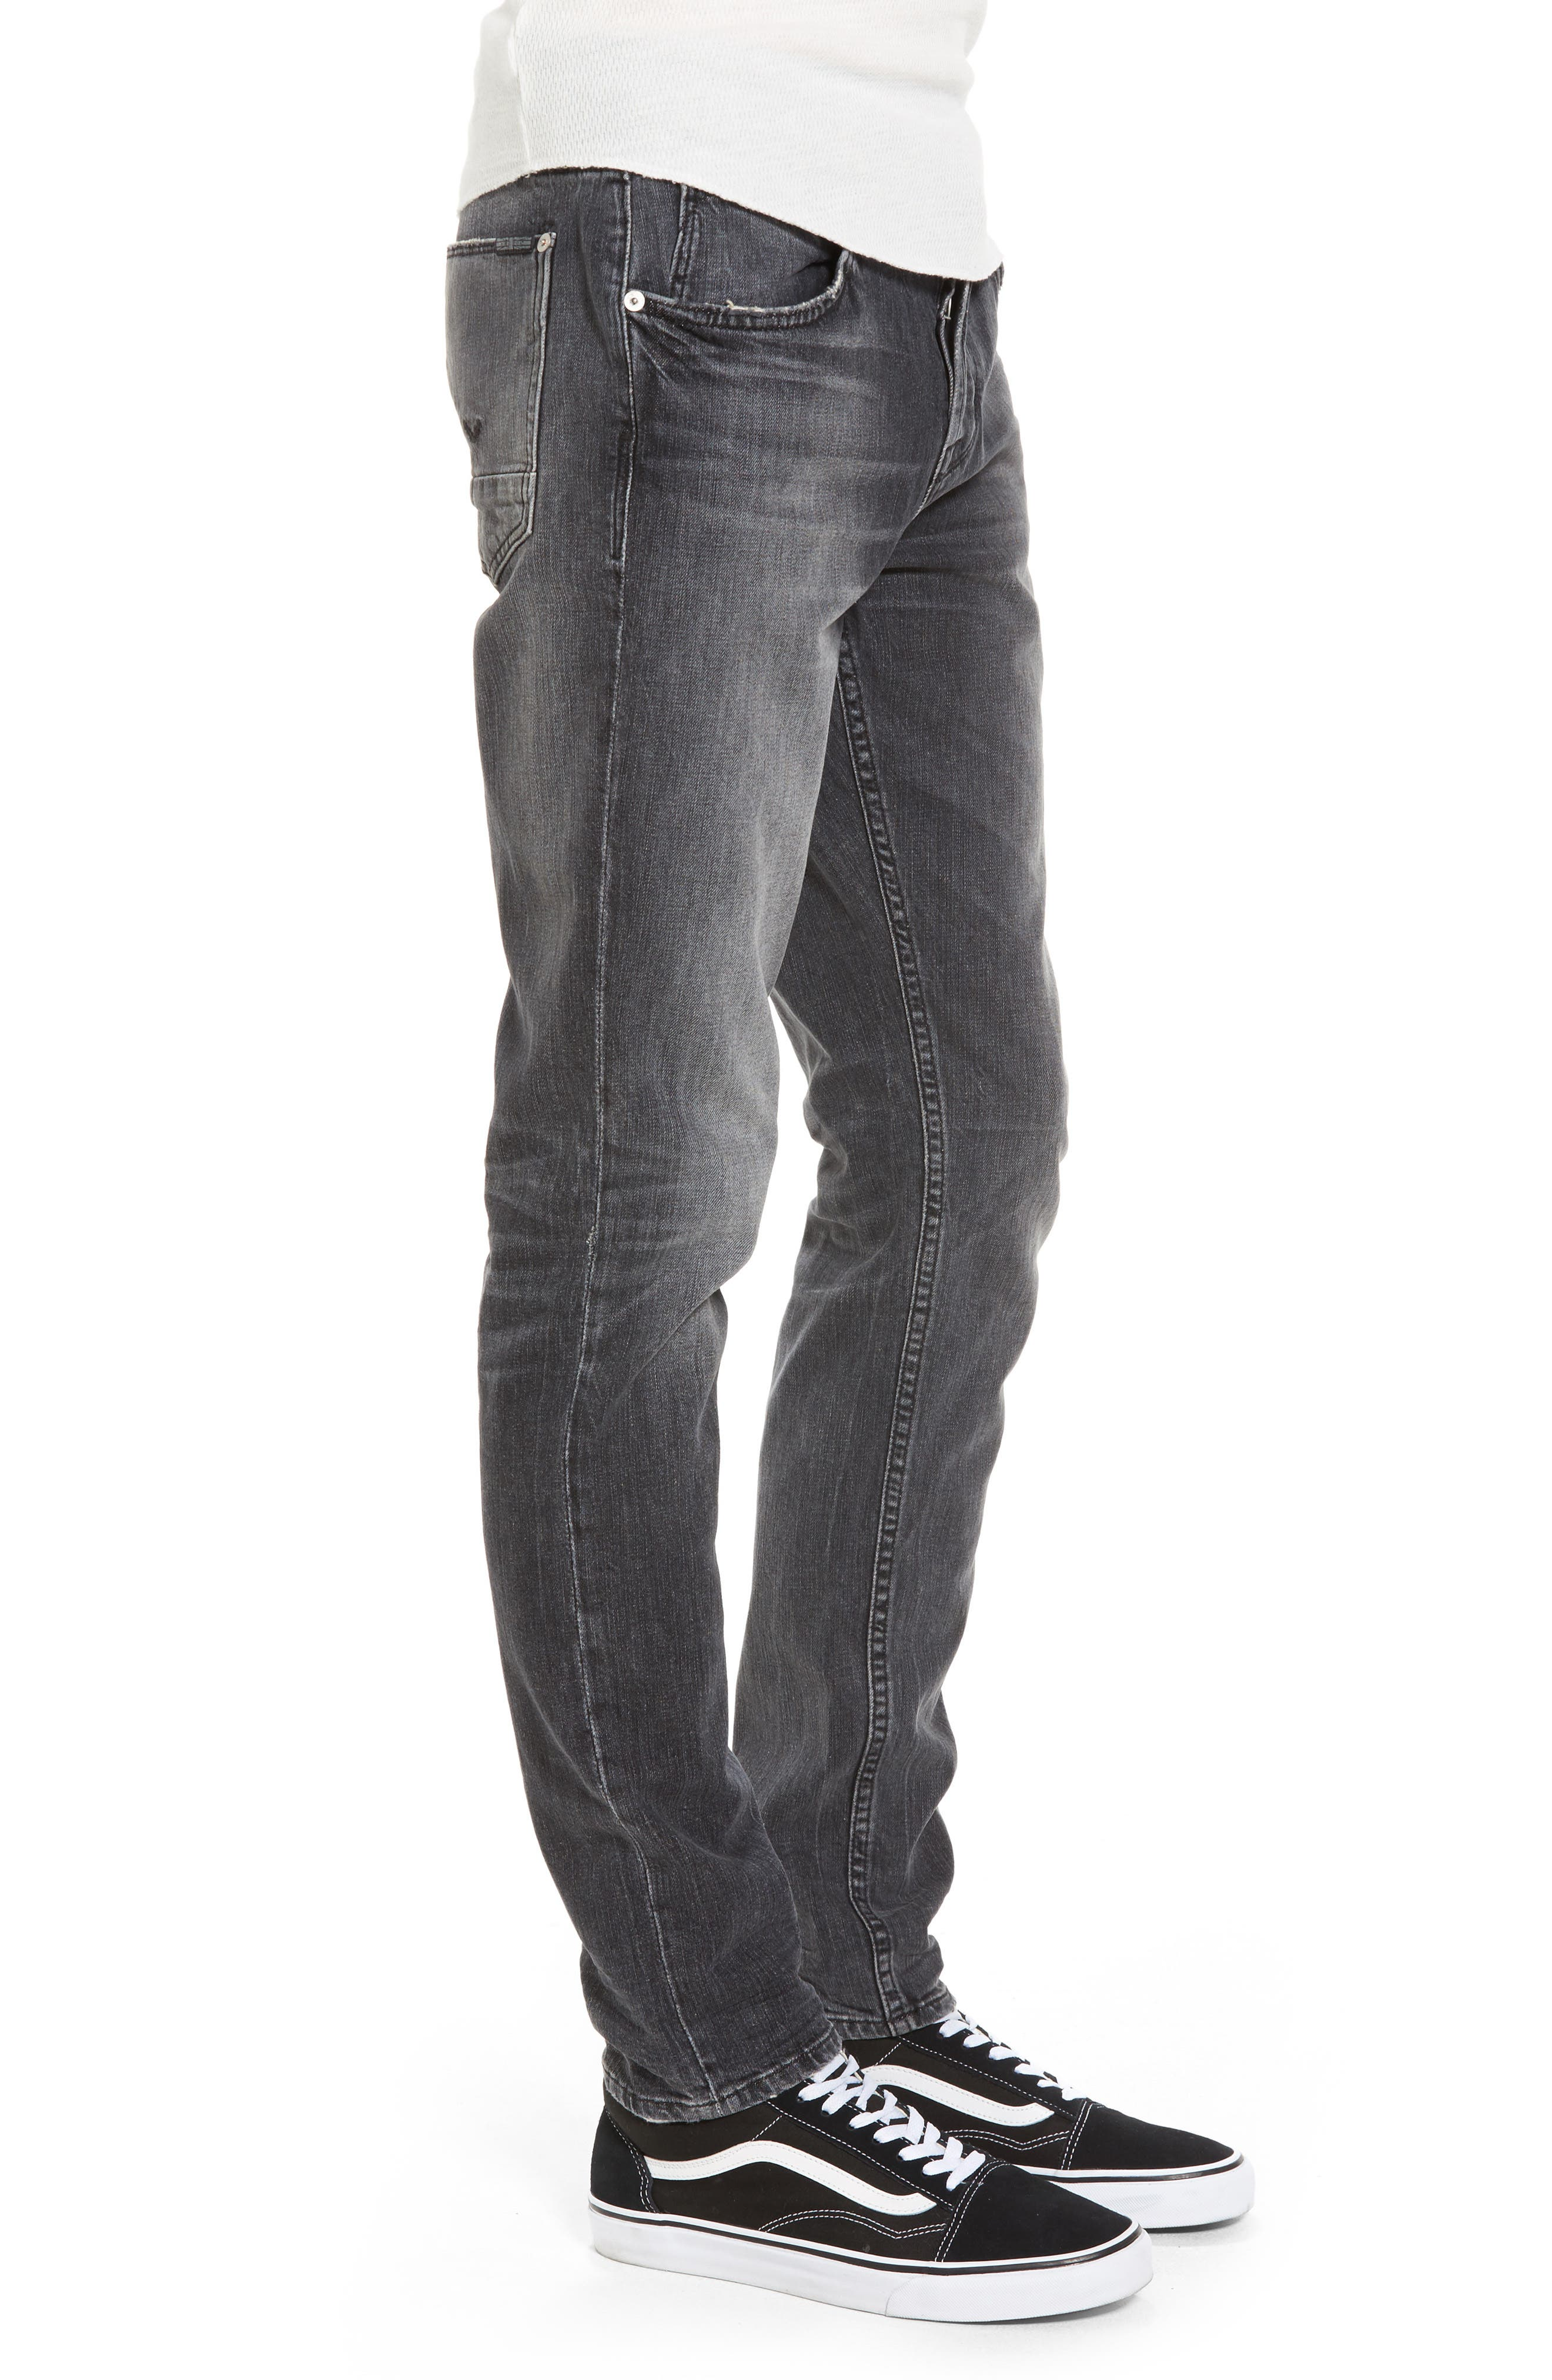 Axl Skinny Fit Jeans,                             Alternate thumbnail 3, color,                             001